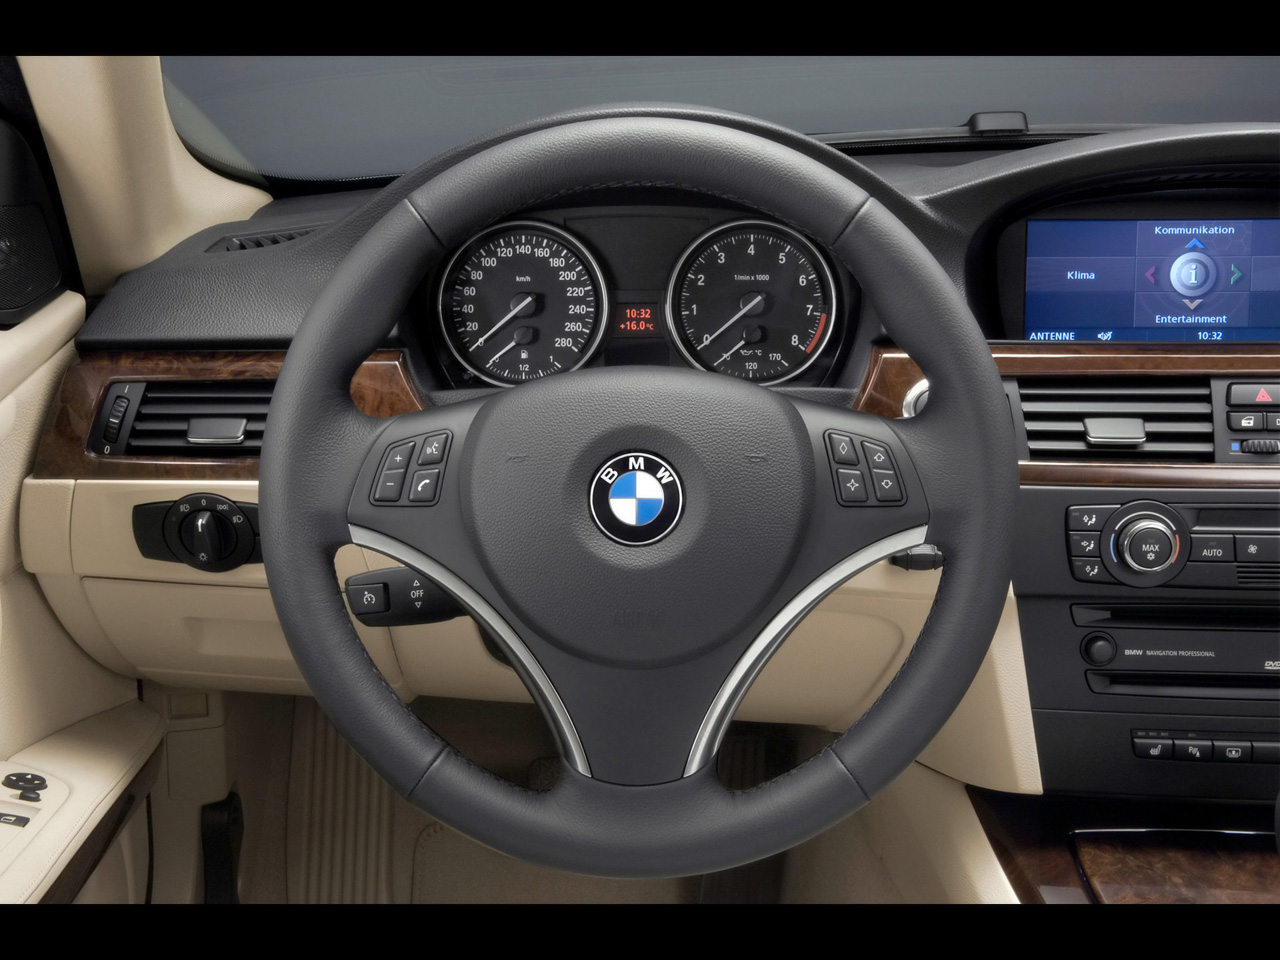 e92 sport steering wheel to m sport steering wheel question. Black Bedroom Furniture Sets. Home Design Ideas